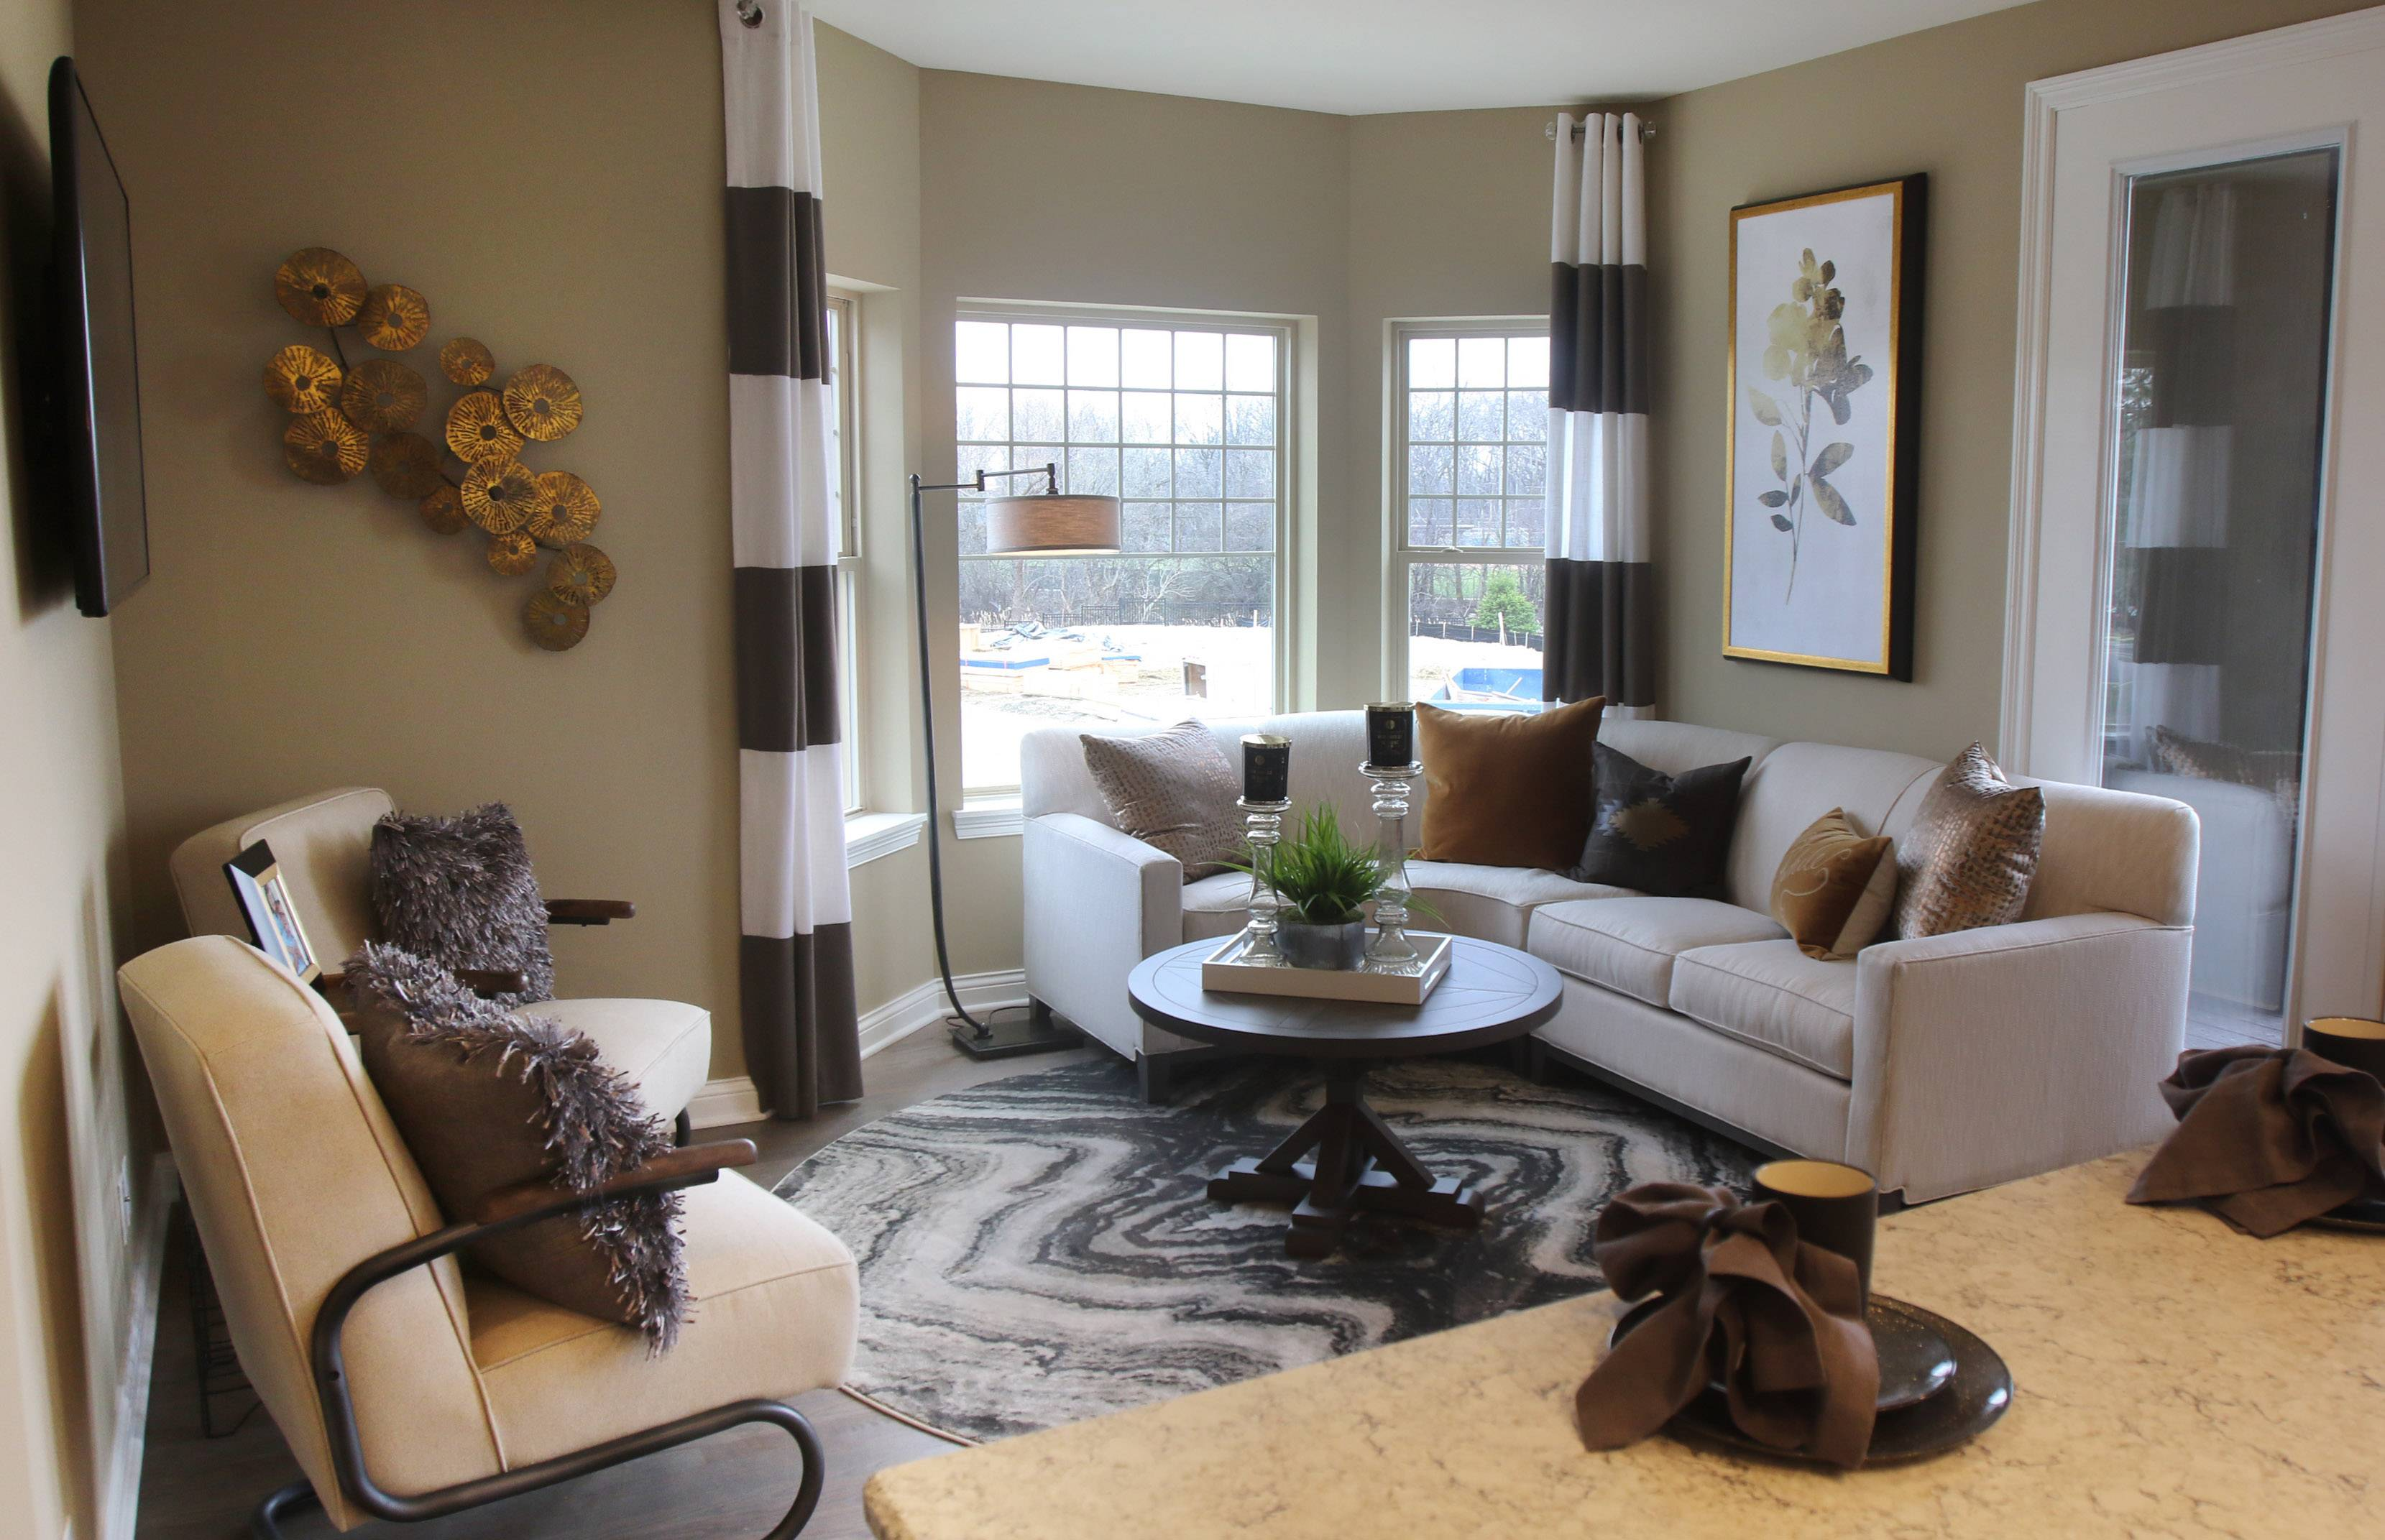 The living room of the Ontario model at Parkside of Libertyville.